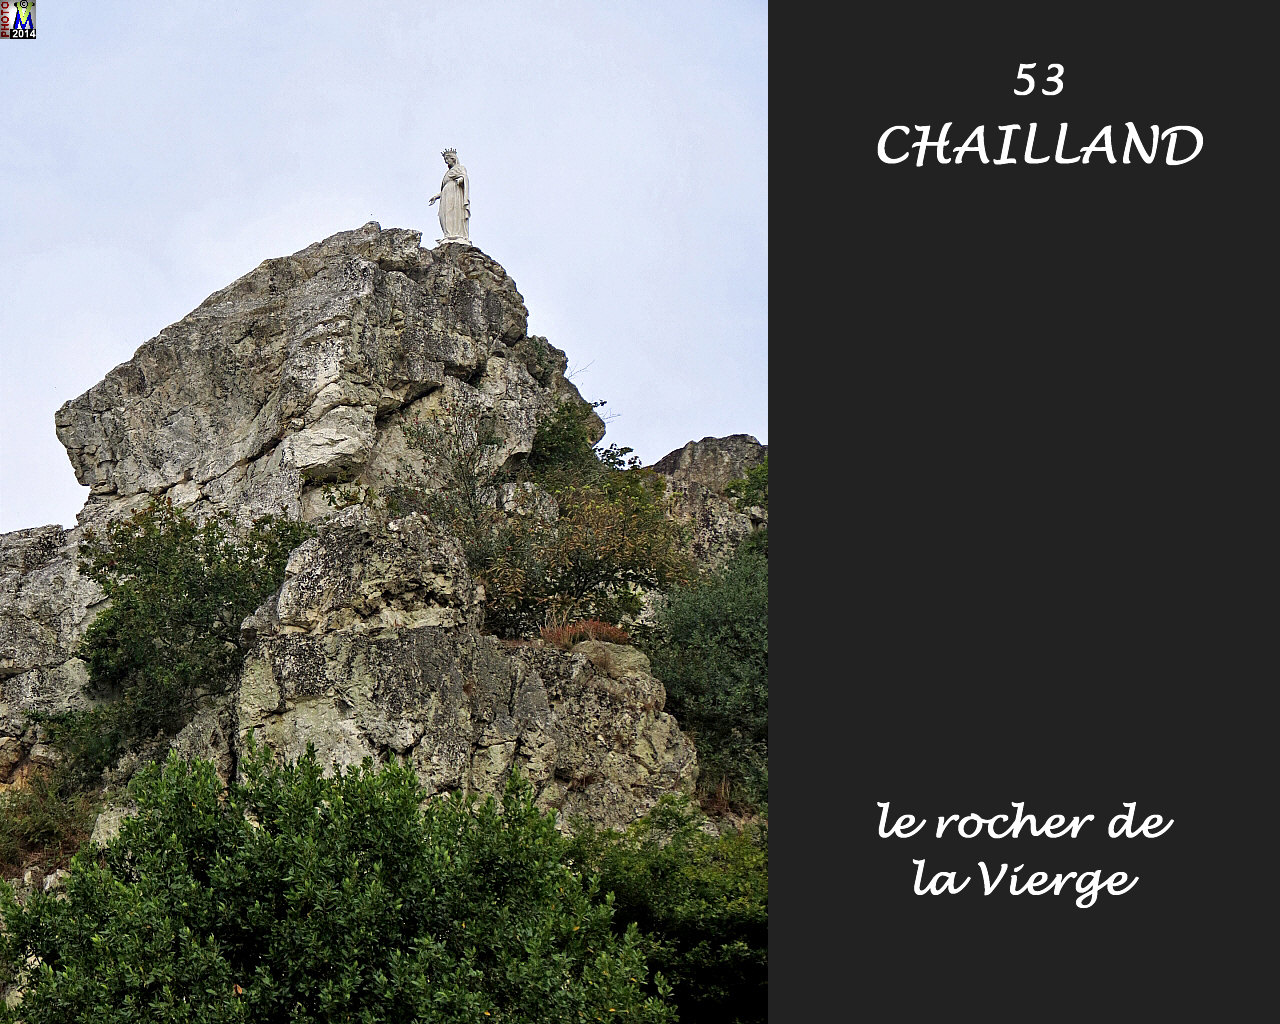 53CHAILLAND_rocherVierge_106.jpg